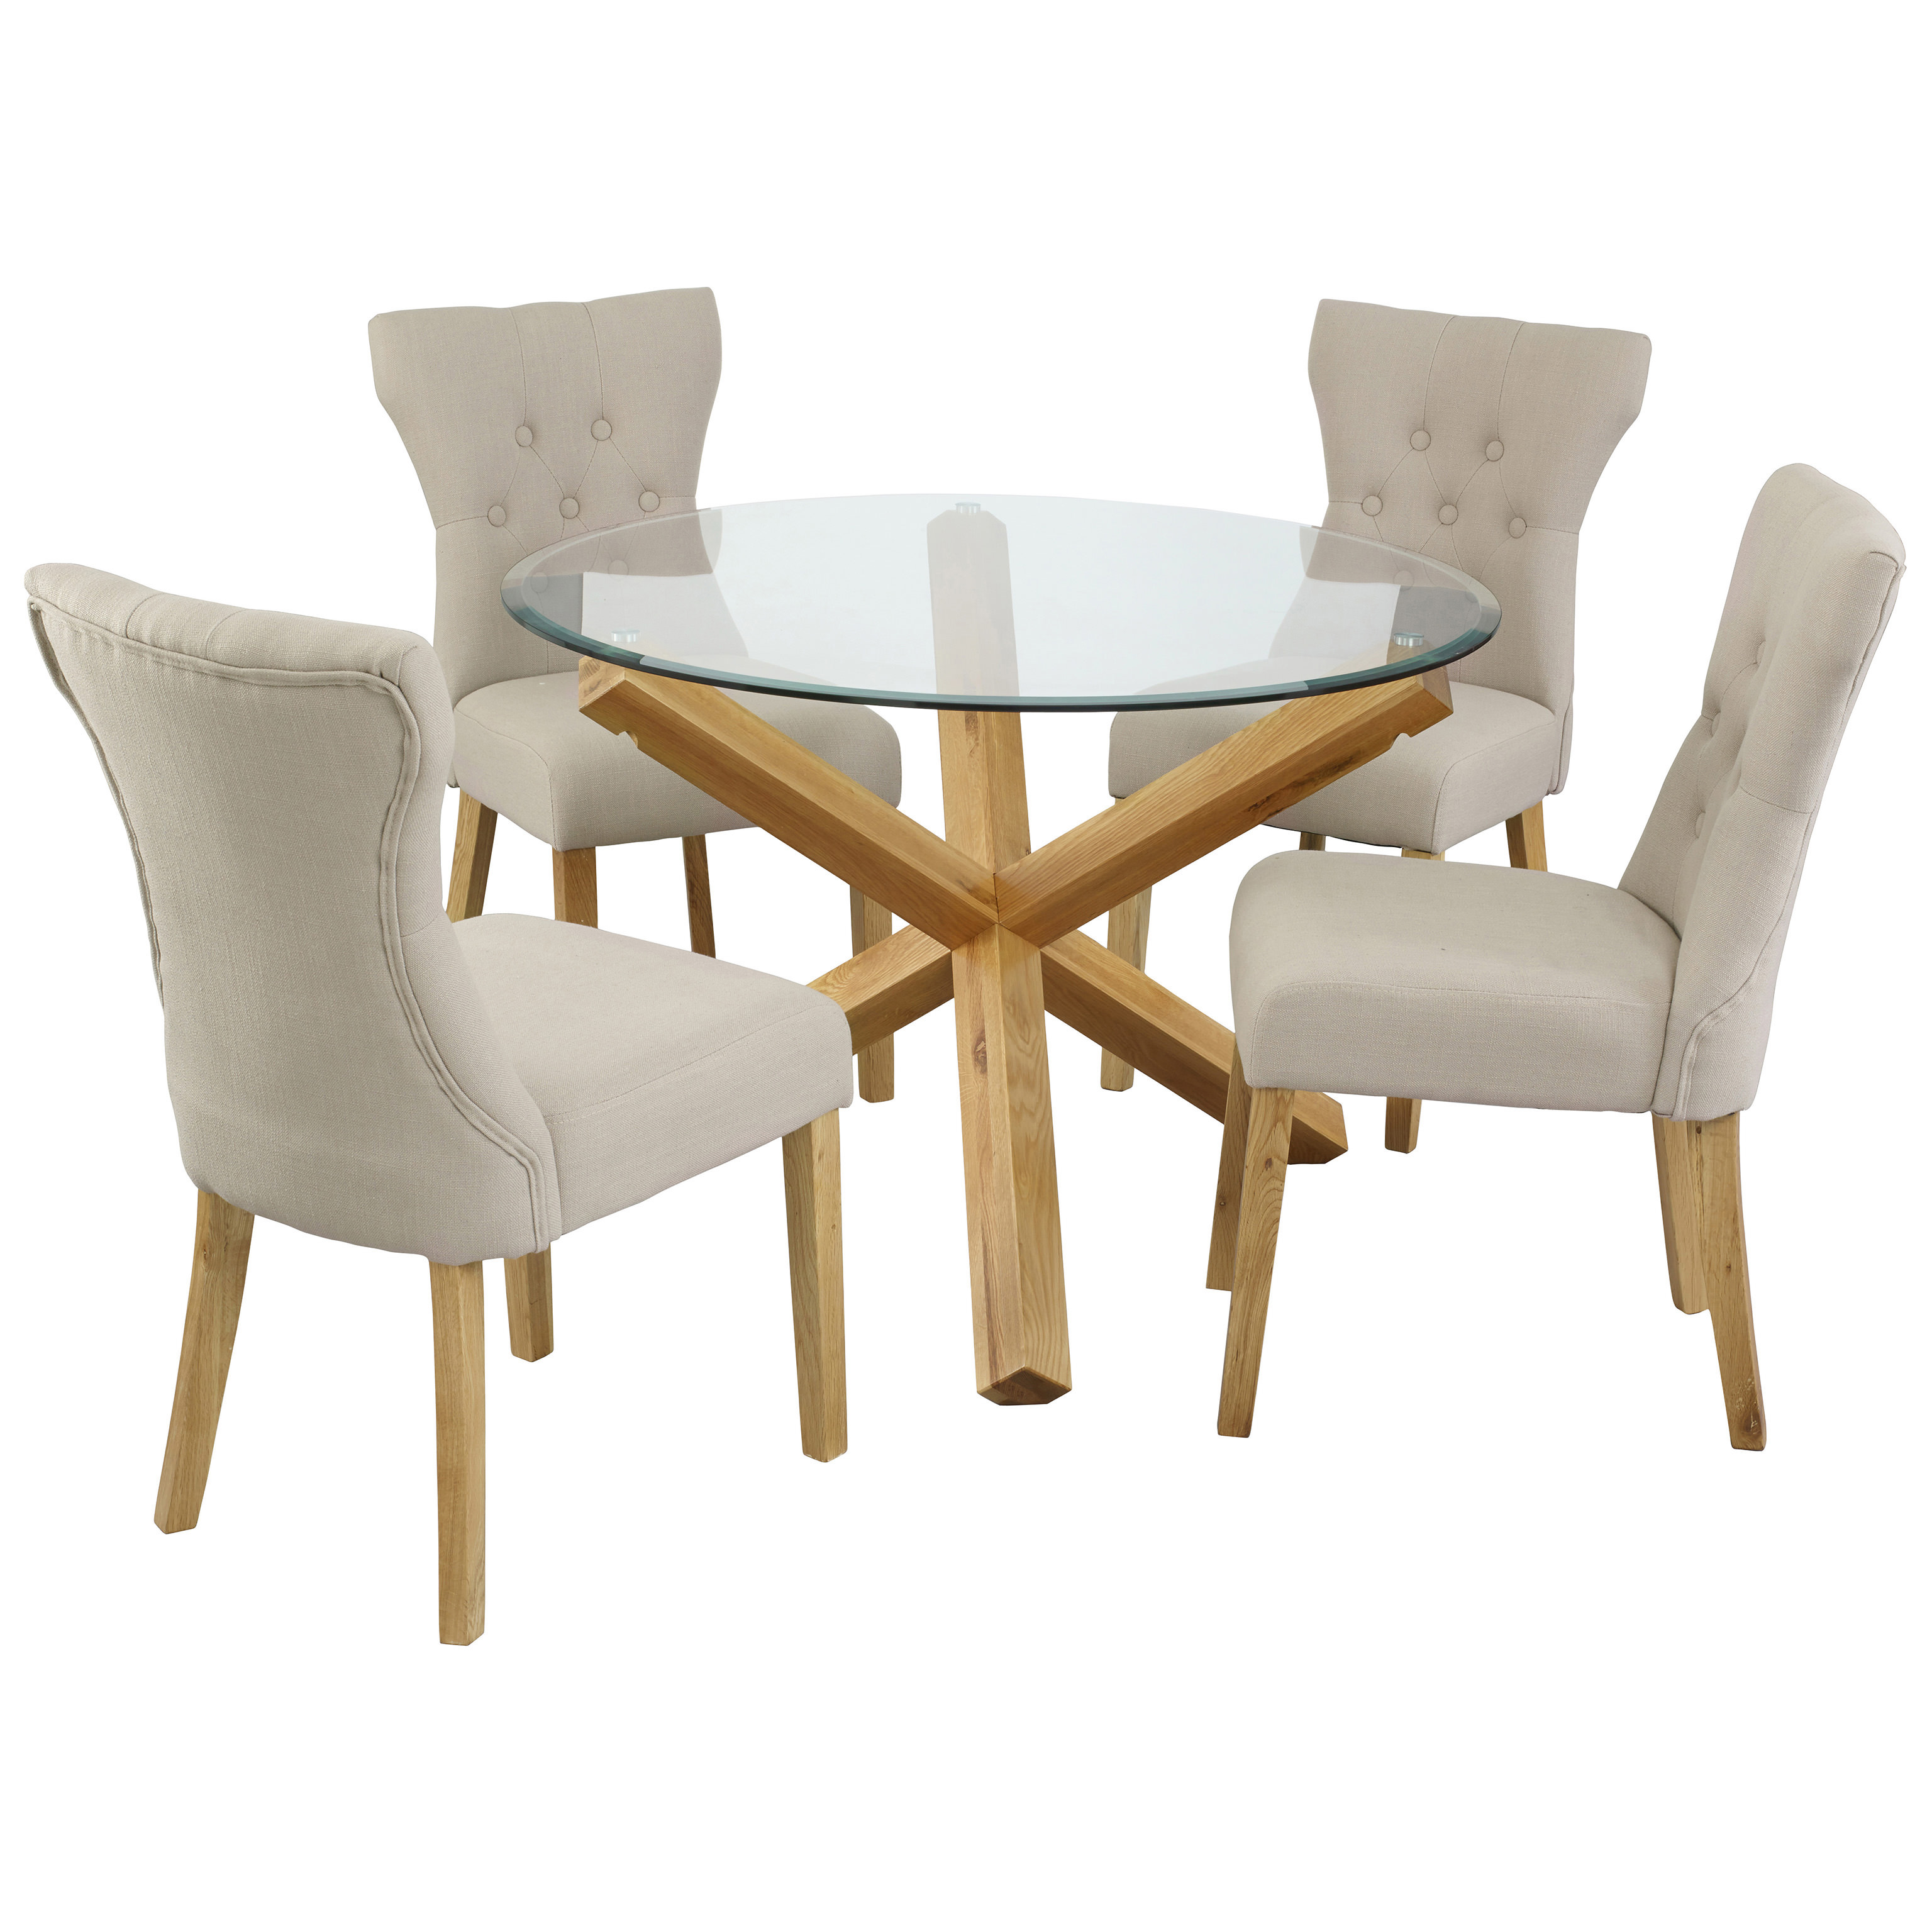 Glass Tables And Chairs Oak And Glass Round Dining Table And Chair Set With 4 Fabric